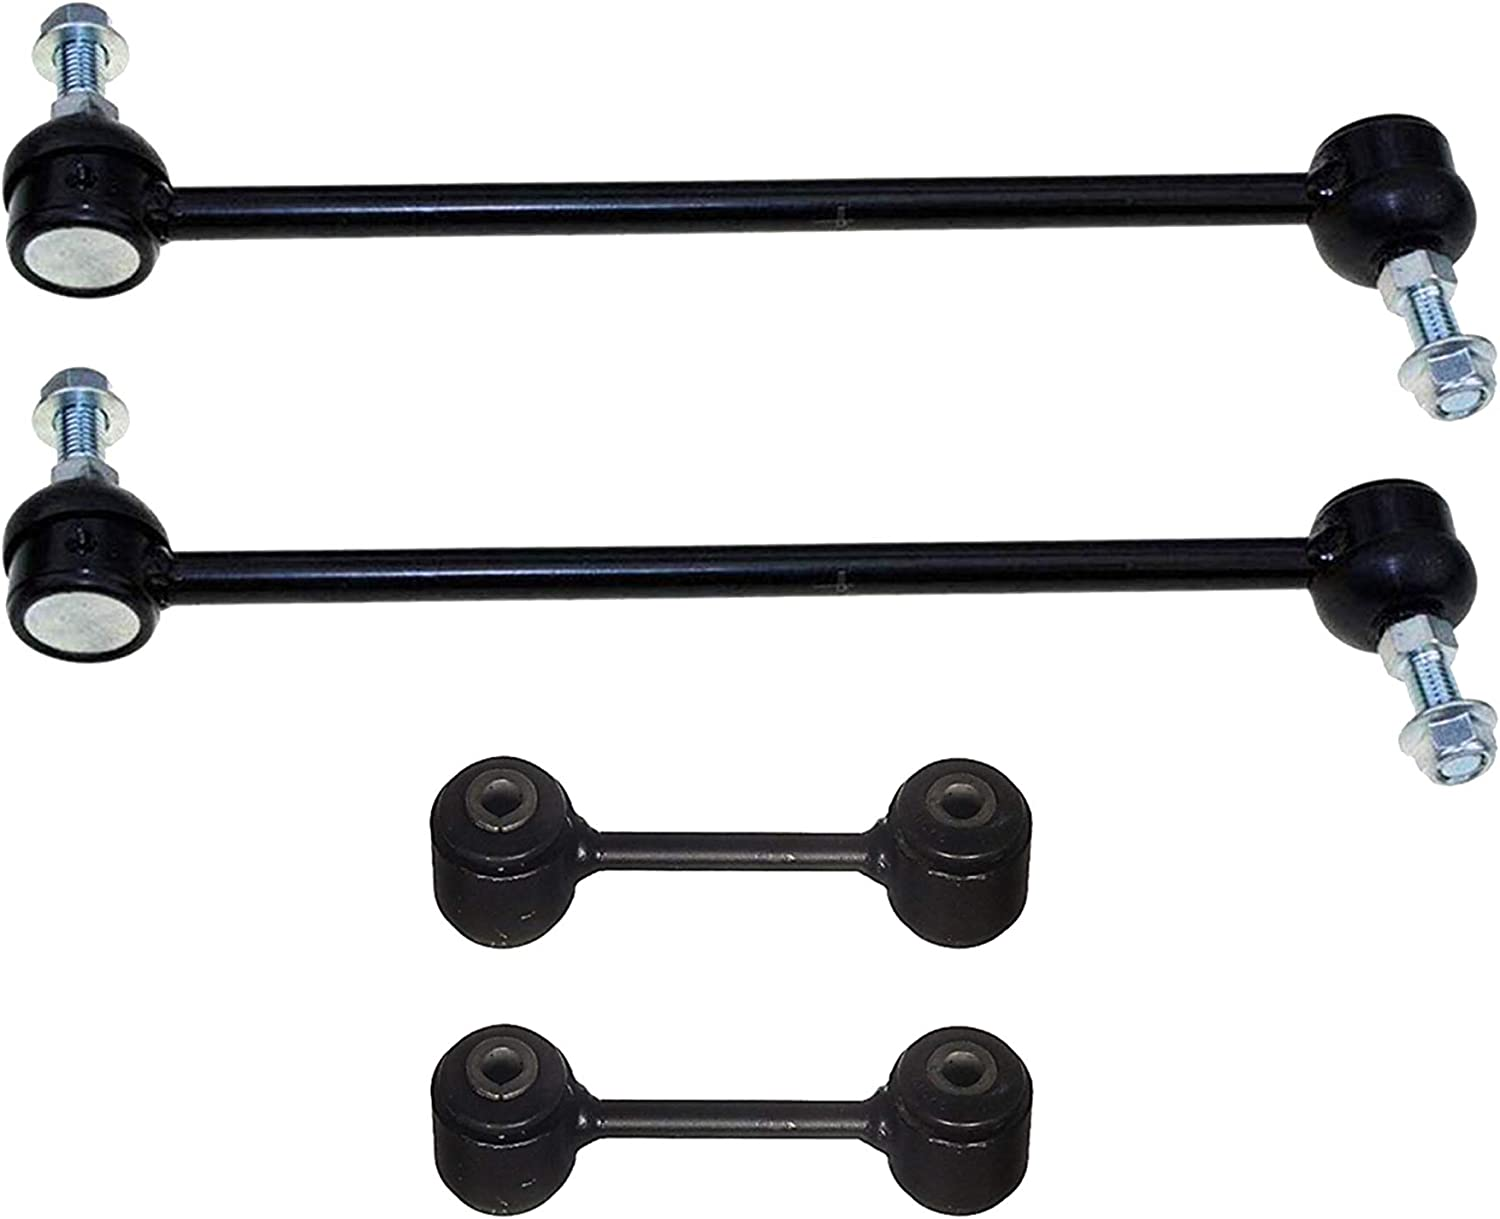 Front Rear NEW before selling ☆ Suspension gift Sway Bar Links Left Right Kit 4 Pieces